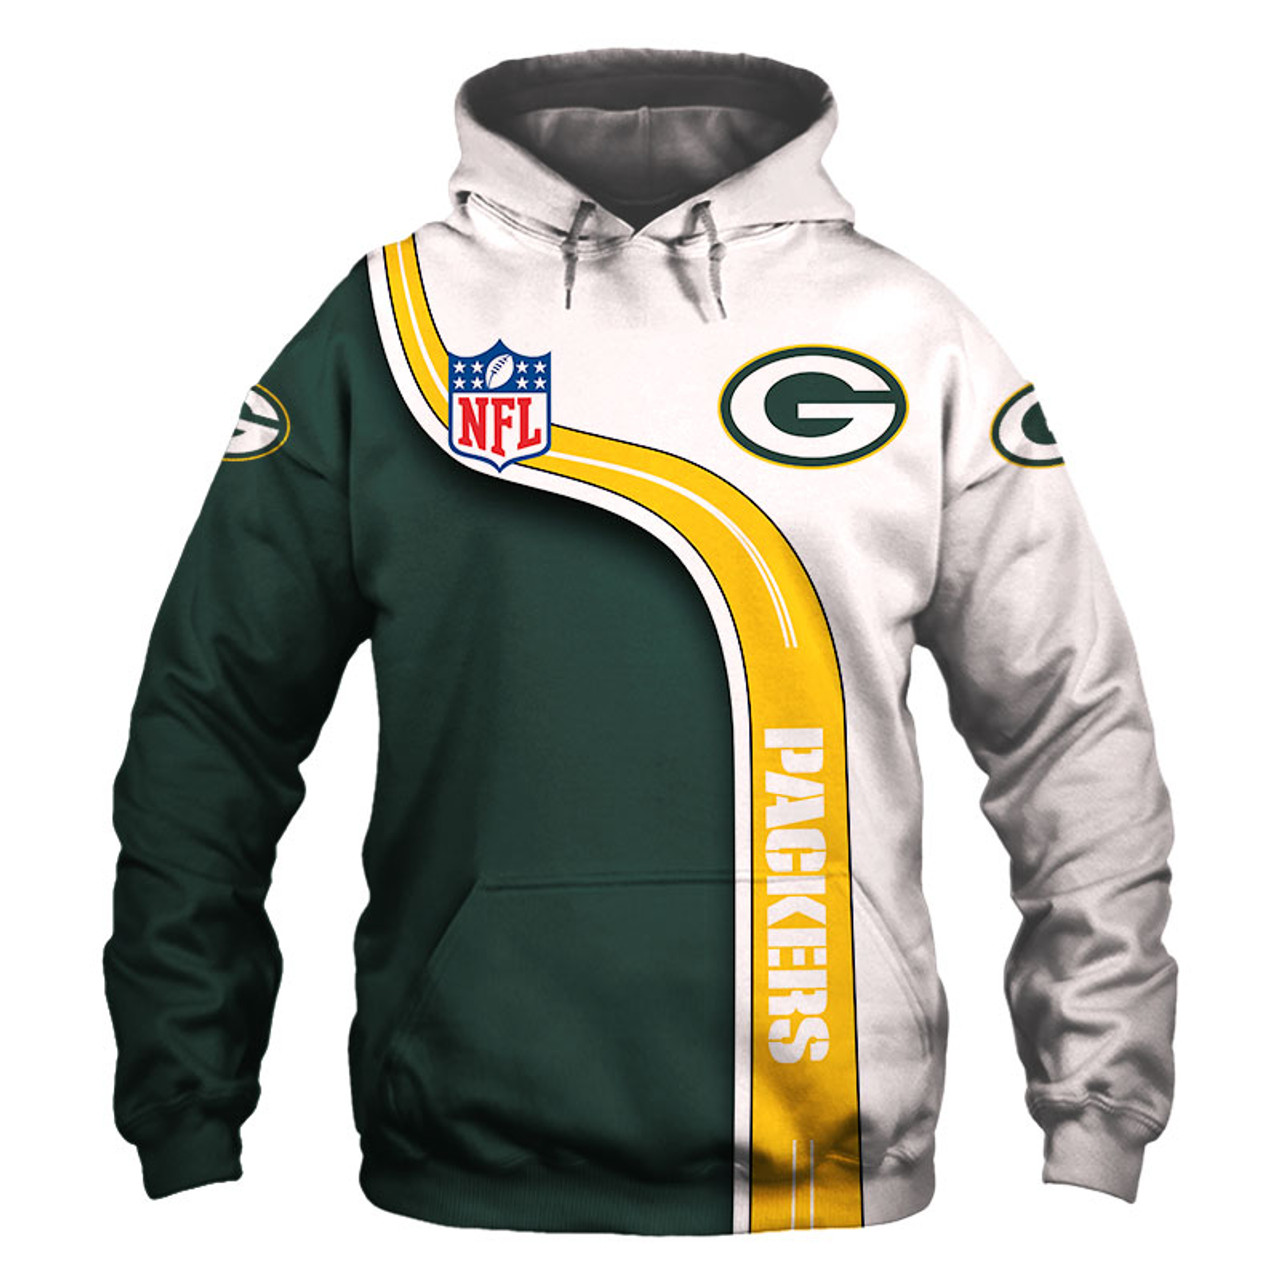 **(OFFICIAL-N.F.L.GREEN-BAY-PACKERS-FASHION-PULLOVER-TEAM-HOODIES/CUSTOM-3D-GRAPHIC-PRINTED-DETAILED-DOUBLE-SIDED-DESIGN/CLASSIC-OFFICIAL-PACKERS-TEAM-LOGOS & OFFICIAL-PACKERS-TEAM-COLORS/WARM-PREMIUM-OFFICIAL-N.F.L.PACKERS-FAN-TEAM-PULLOVER-HOODIES)**